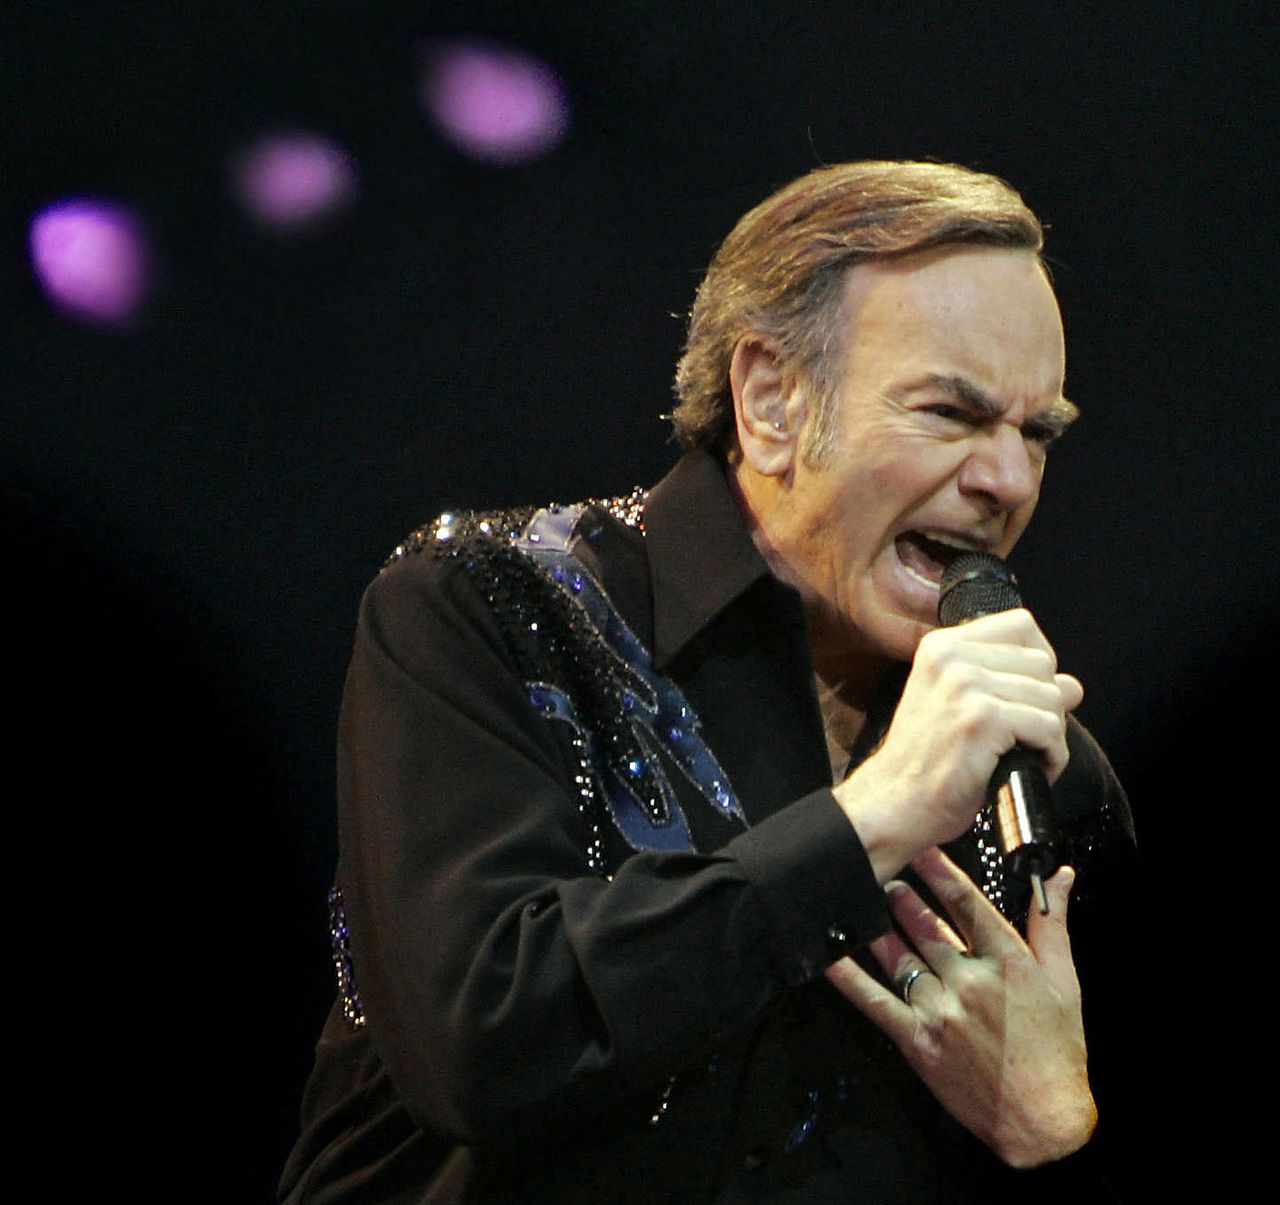 NO MORE KITSCH: Neil Diamond maakt op zijn oude dag introverte, droevige liedjes Foto AP Neil Diamond performs at Kemper Arena in Kansas City, Mo., Tuesday, Dec.13, 2005. (AP Photo/The Kansas City Star, Chris Oberholtz) ** NO MAGS NO SALES **